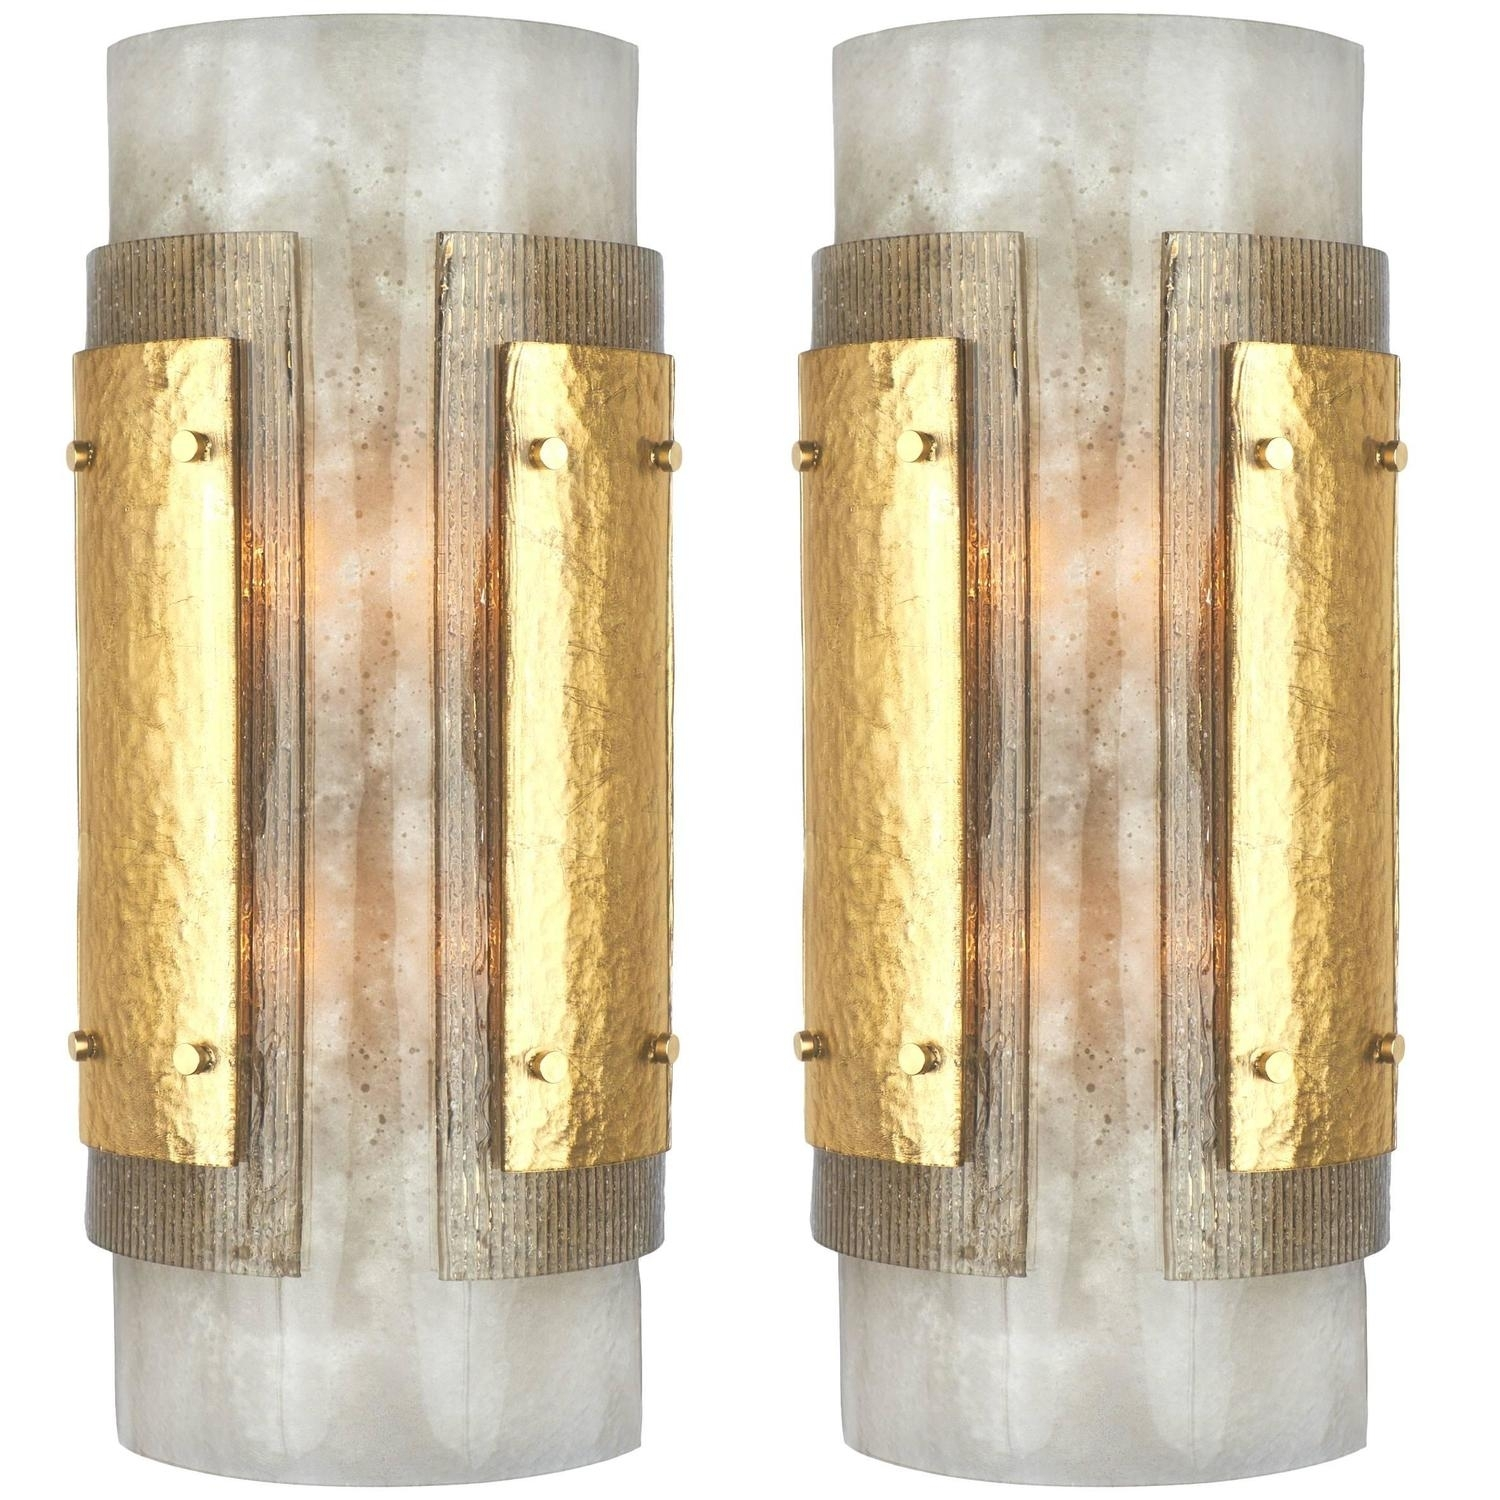 Photo Gallery of Art Deco Wall Sconces (Showing 8 of 20 Photos)